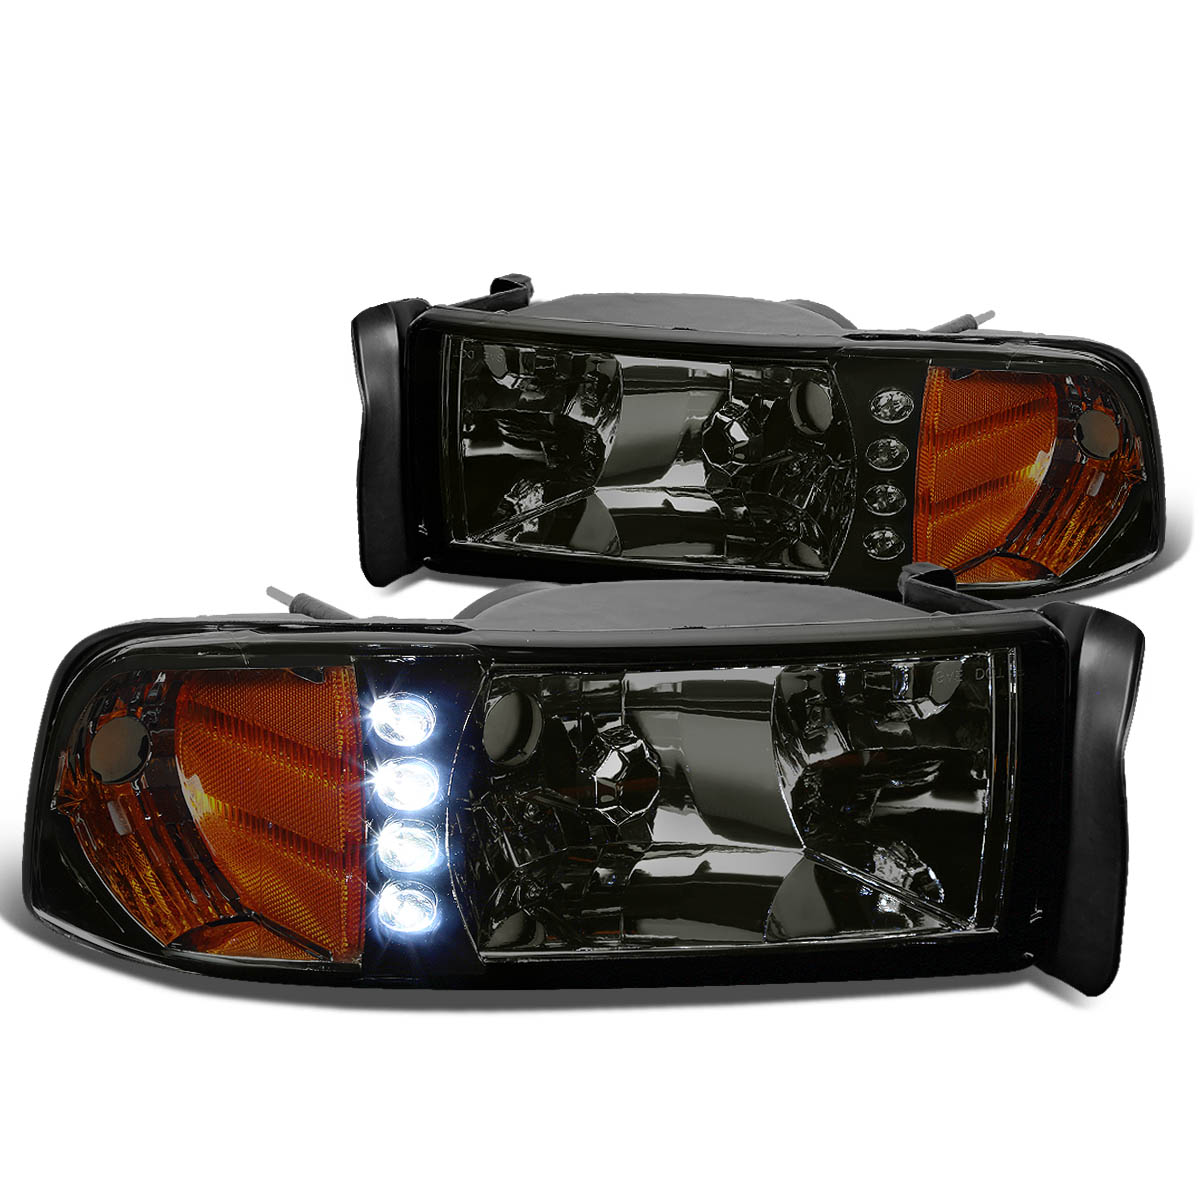 For 94-01 Dodge Ram BR/BE 1pc LED Headlight Assembly Kit (Smoke Lens Amber Reflector) 95 96 97 98 99 00